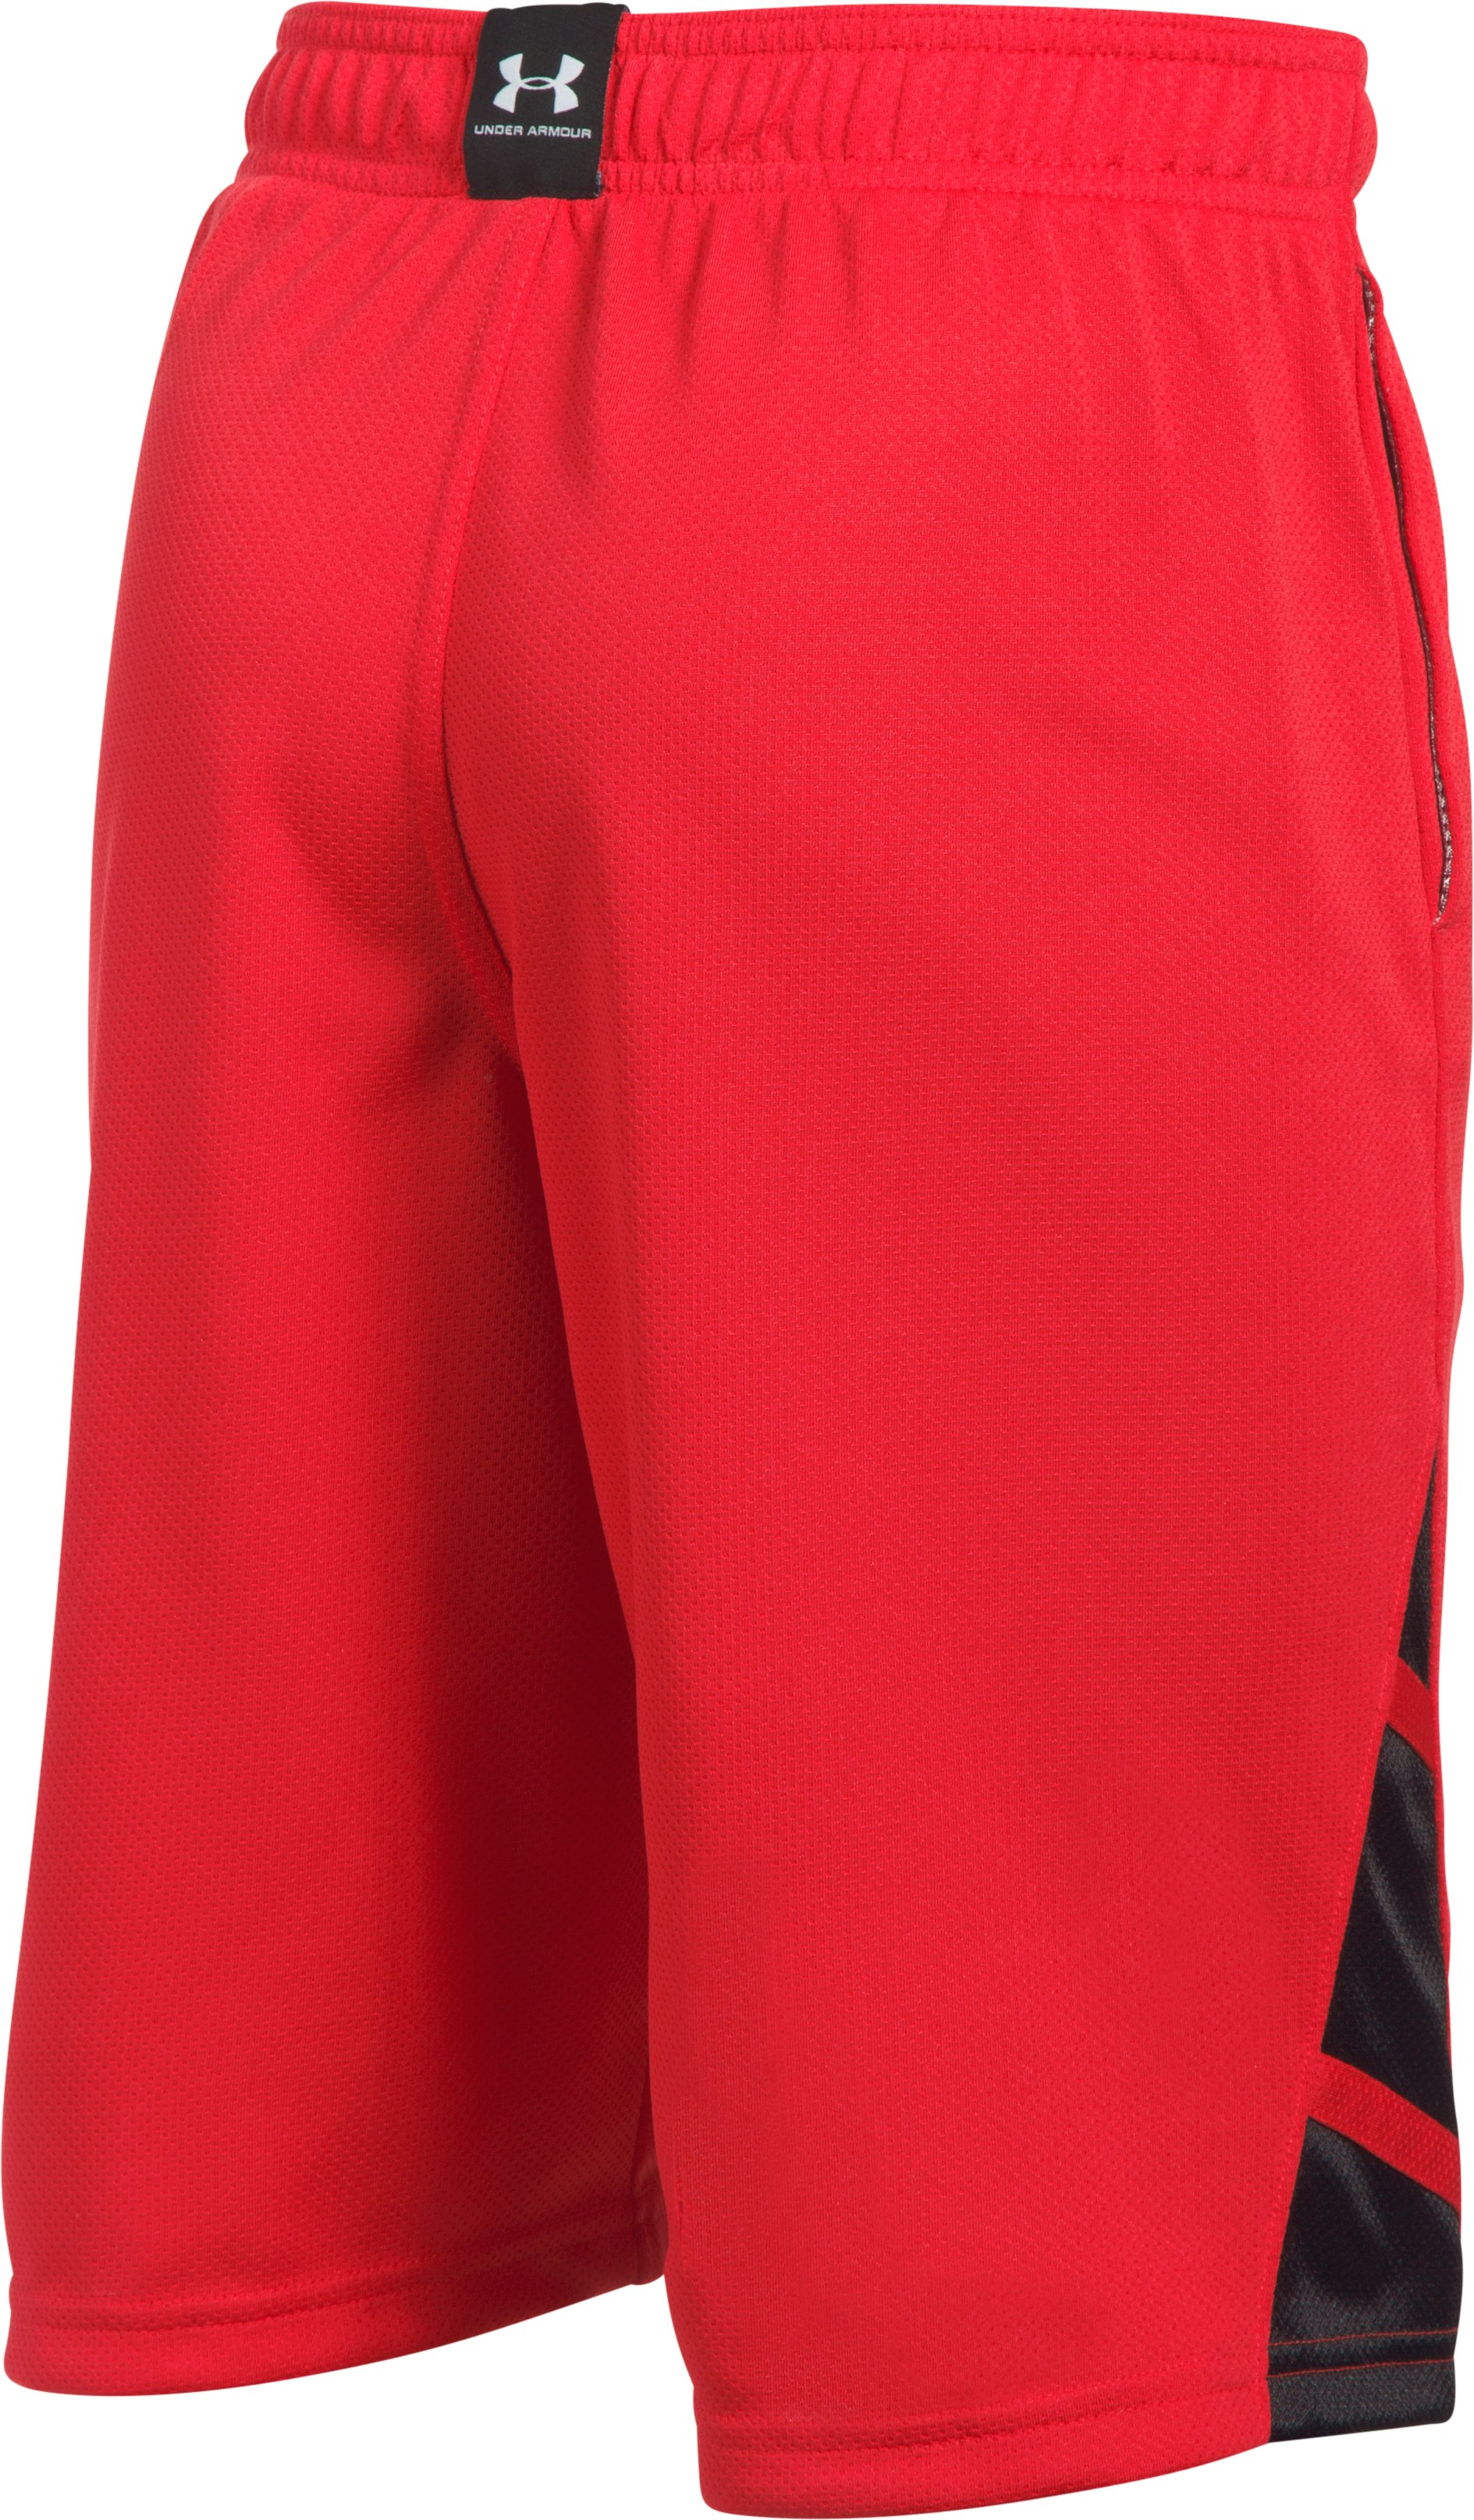 Boys' UA Triple Double Shorts, Red, undefined